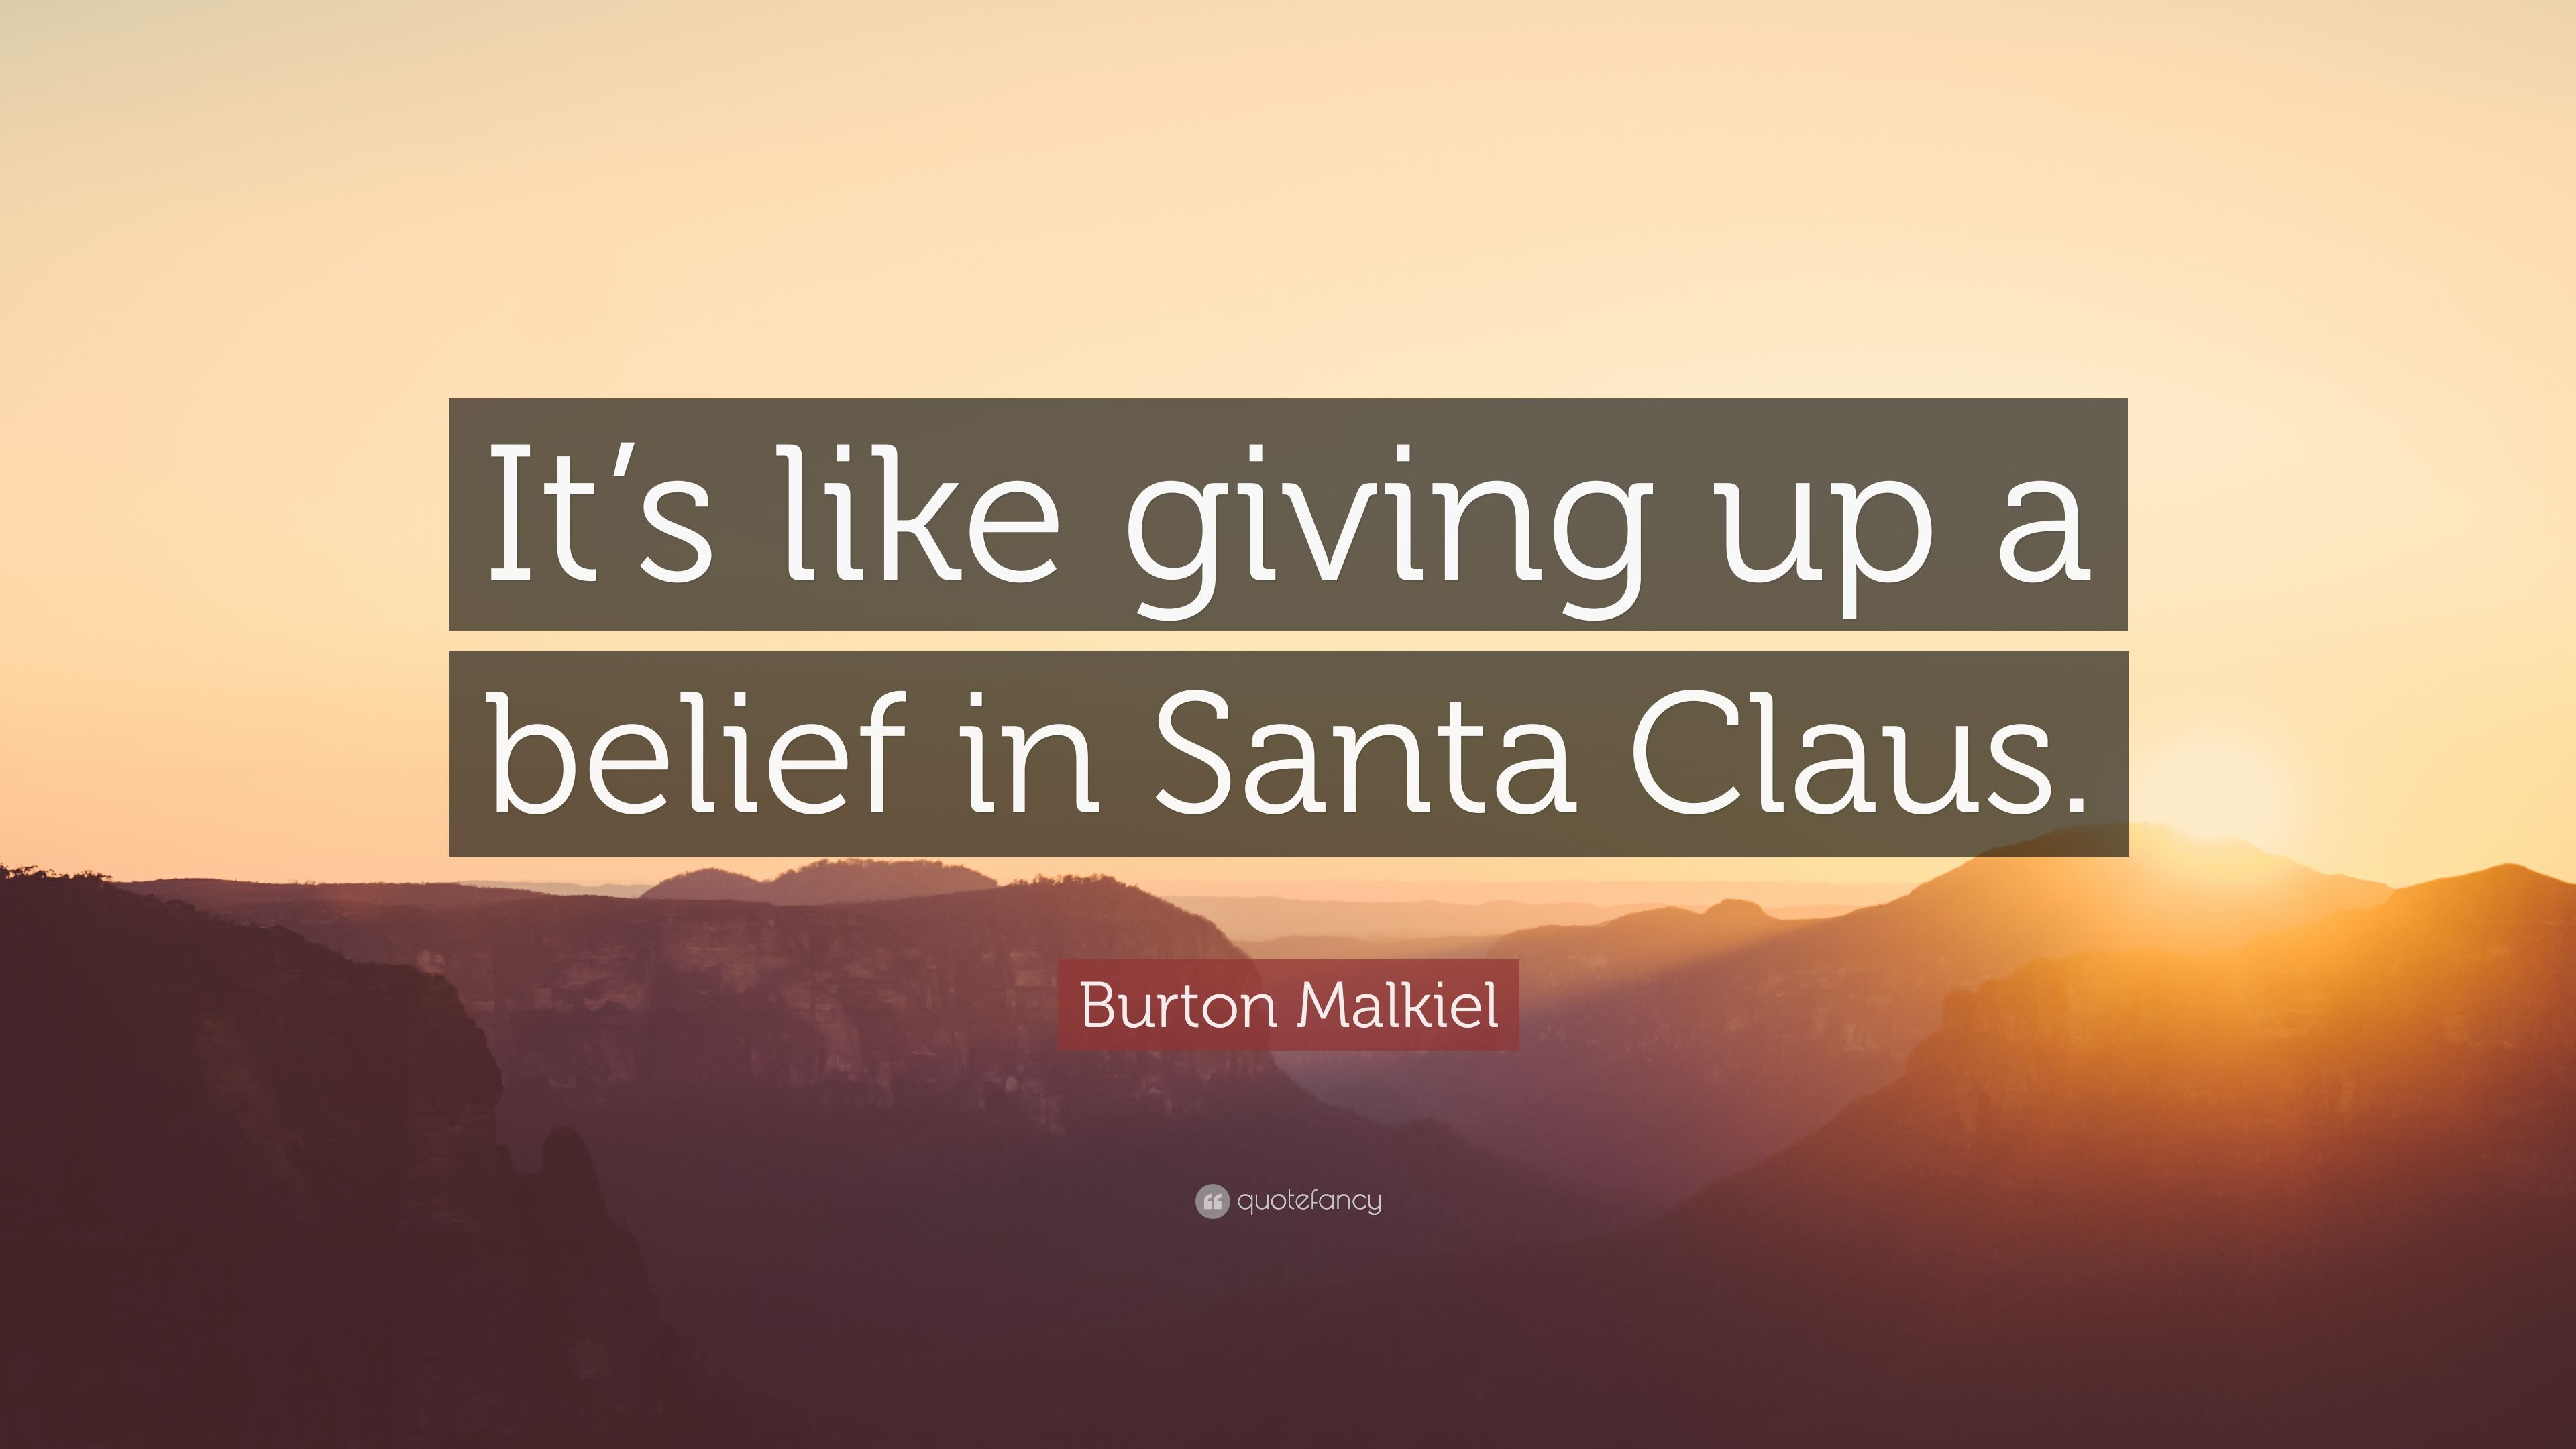 Delightful Burton Malkiel Quote: U201cItu0027s Like Giving Up A Belief In Santa Claus.u201d